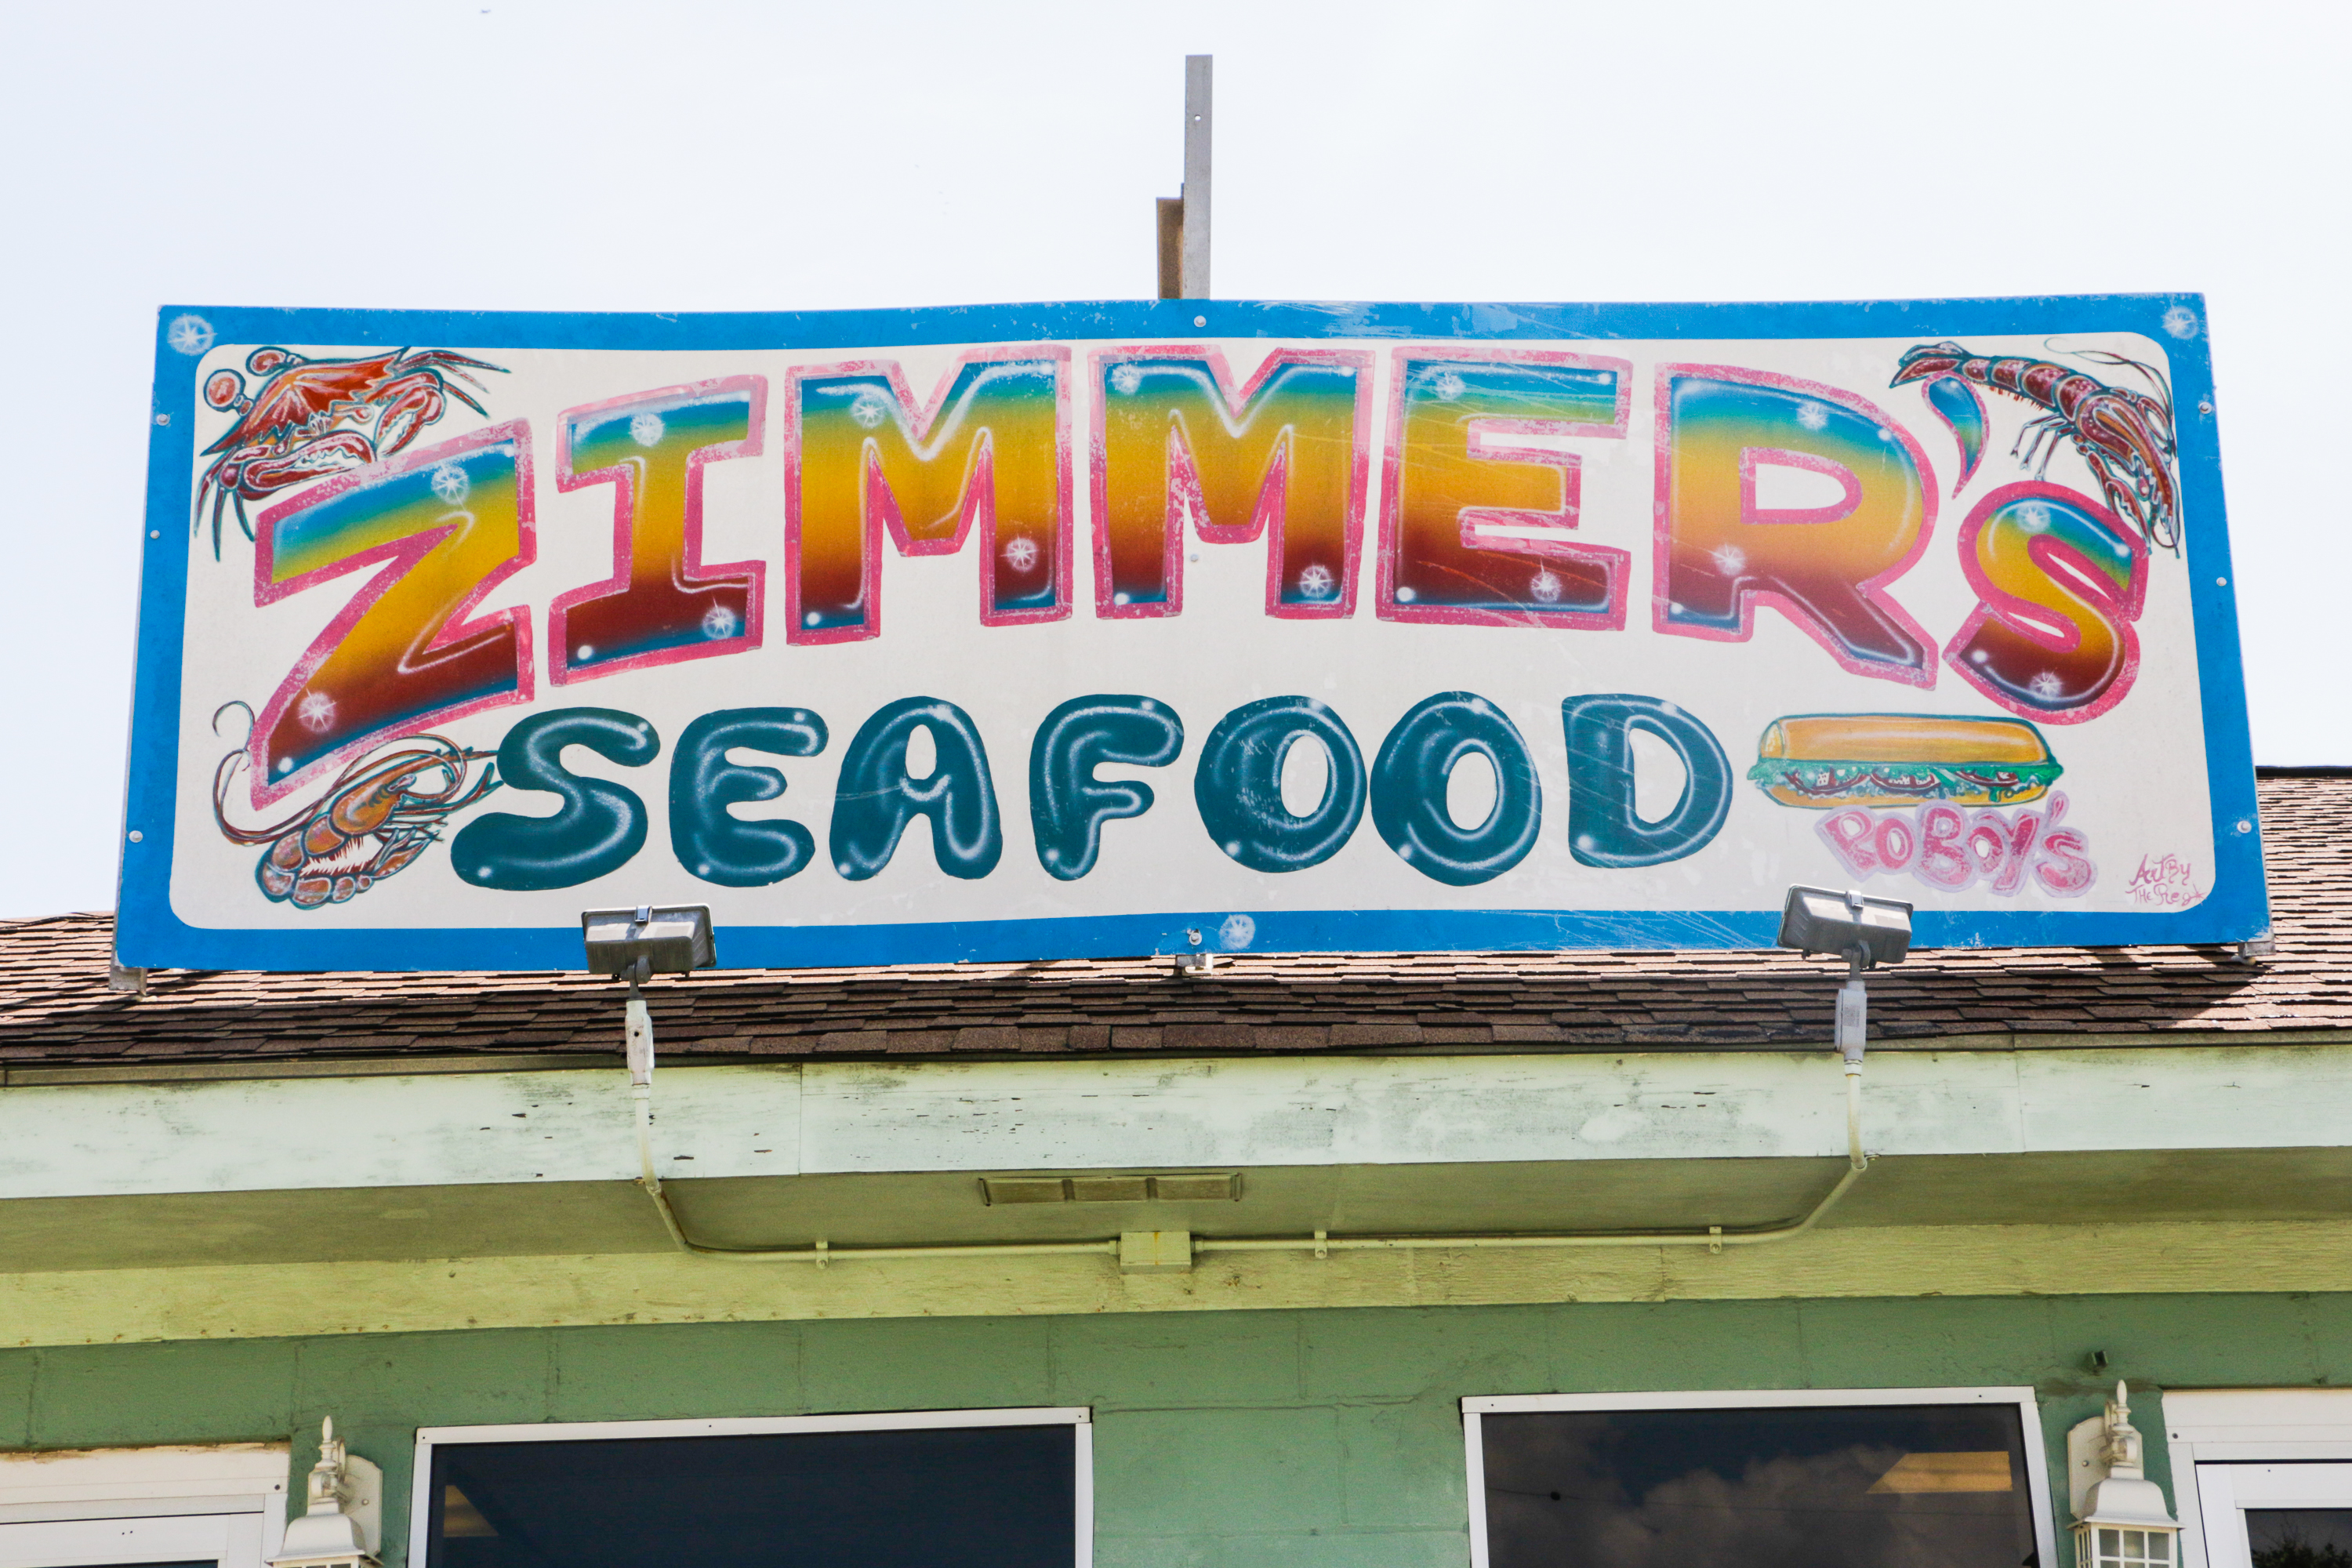 Pick up a to-go bag of boils from Zimmer's in Gentilly, and you can indulge in mudbugs anywhere you'd like.